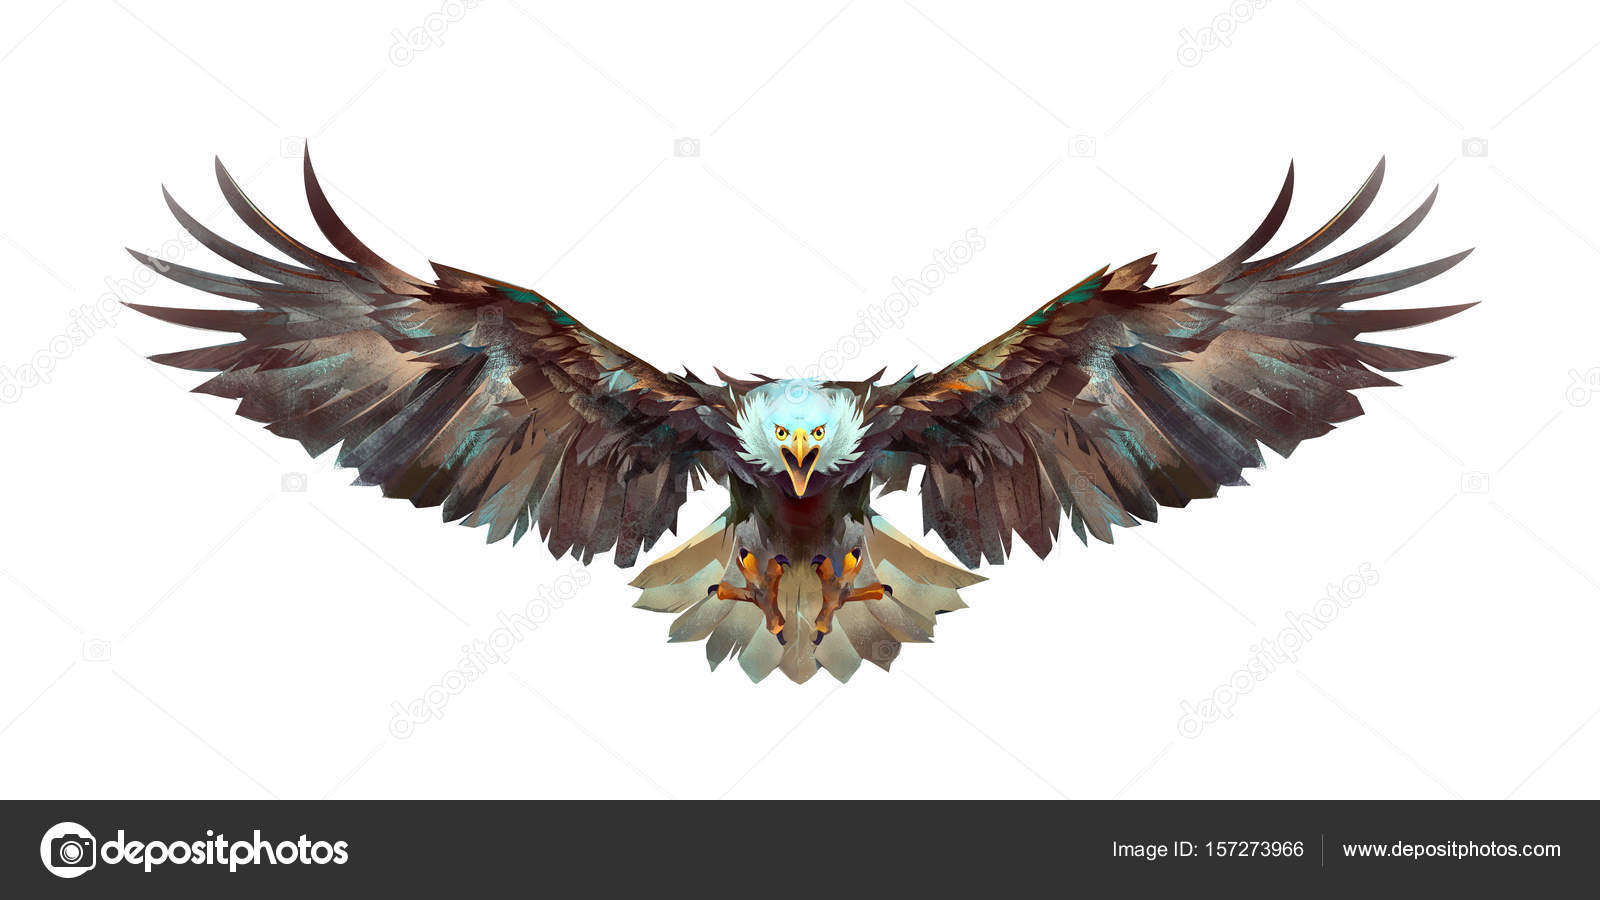 Painted a flying eagle on a white background front stock photo art flying eagle on a white background front photo by khius altavistaventures Image collections